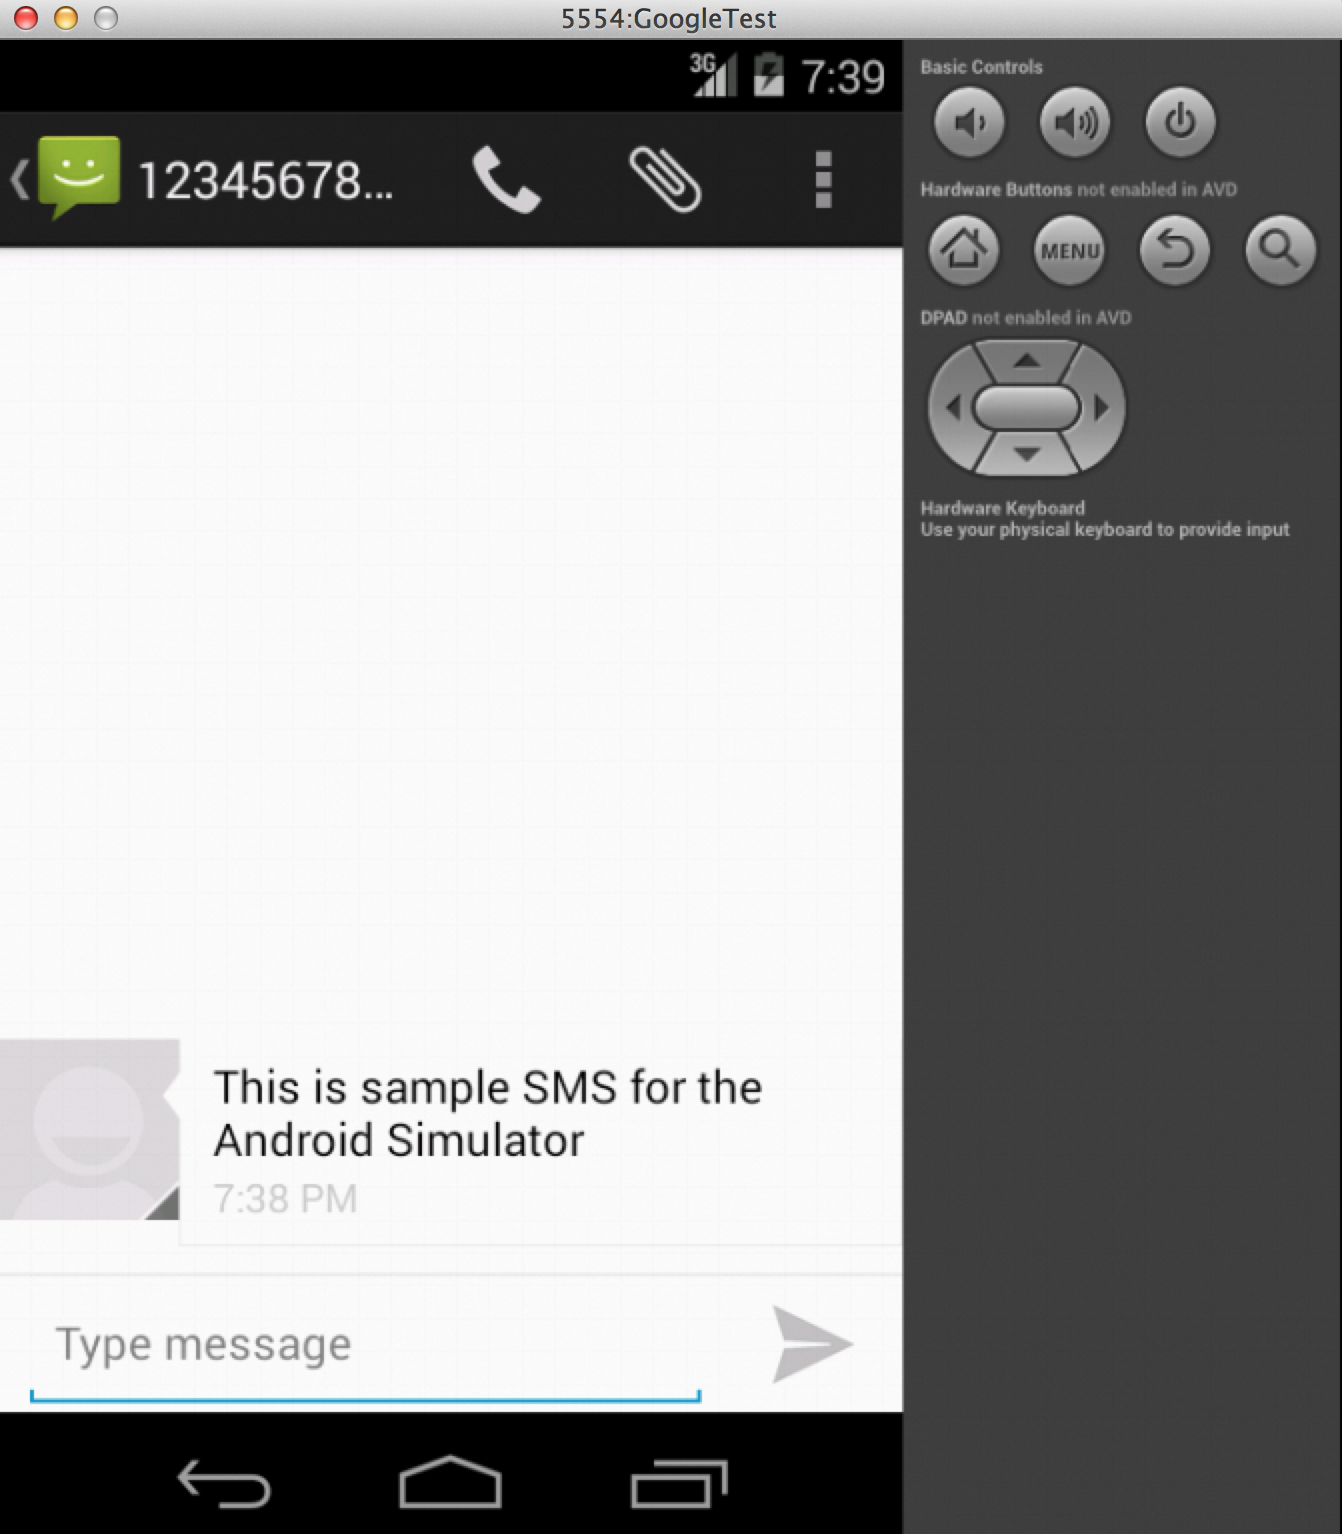 Sunil's Notes: Sending SMS to android simulator